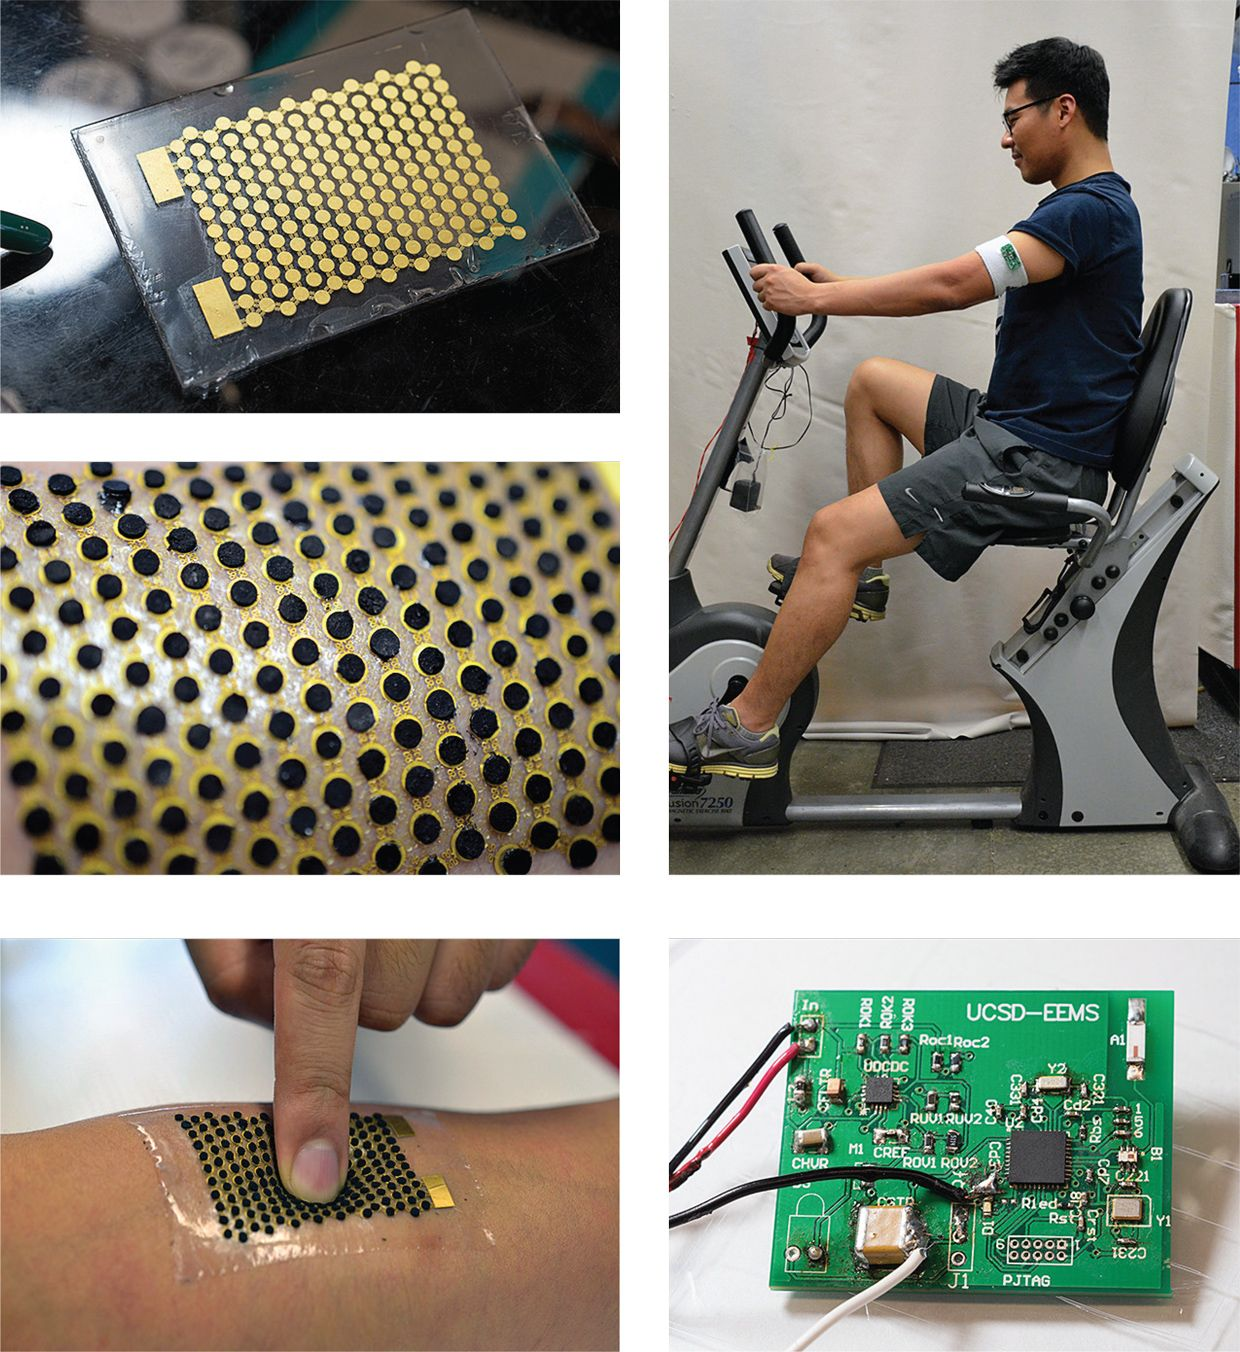 Photo-group showing how a wearable turns sweat into energy.